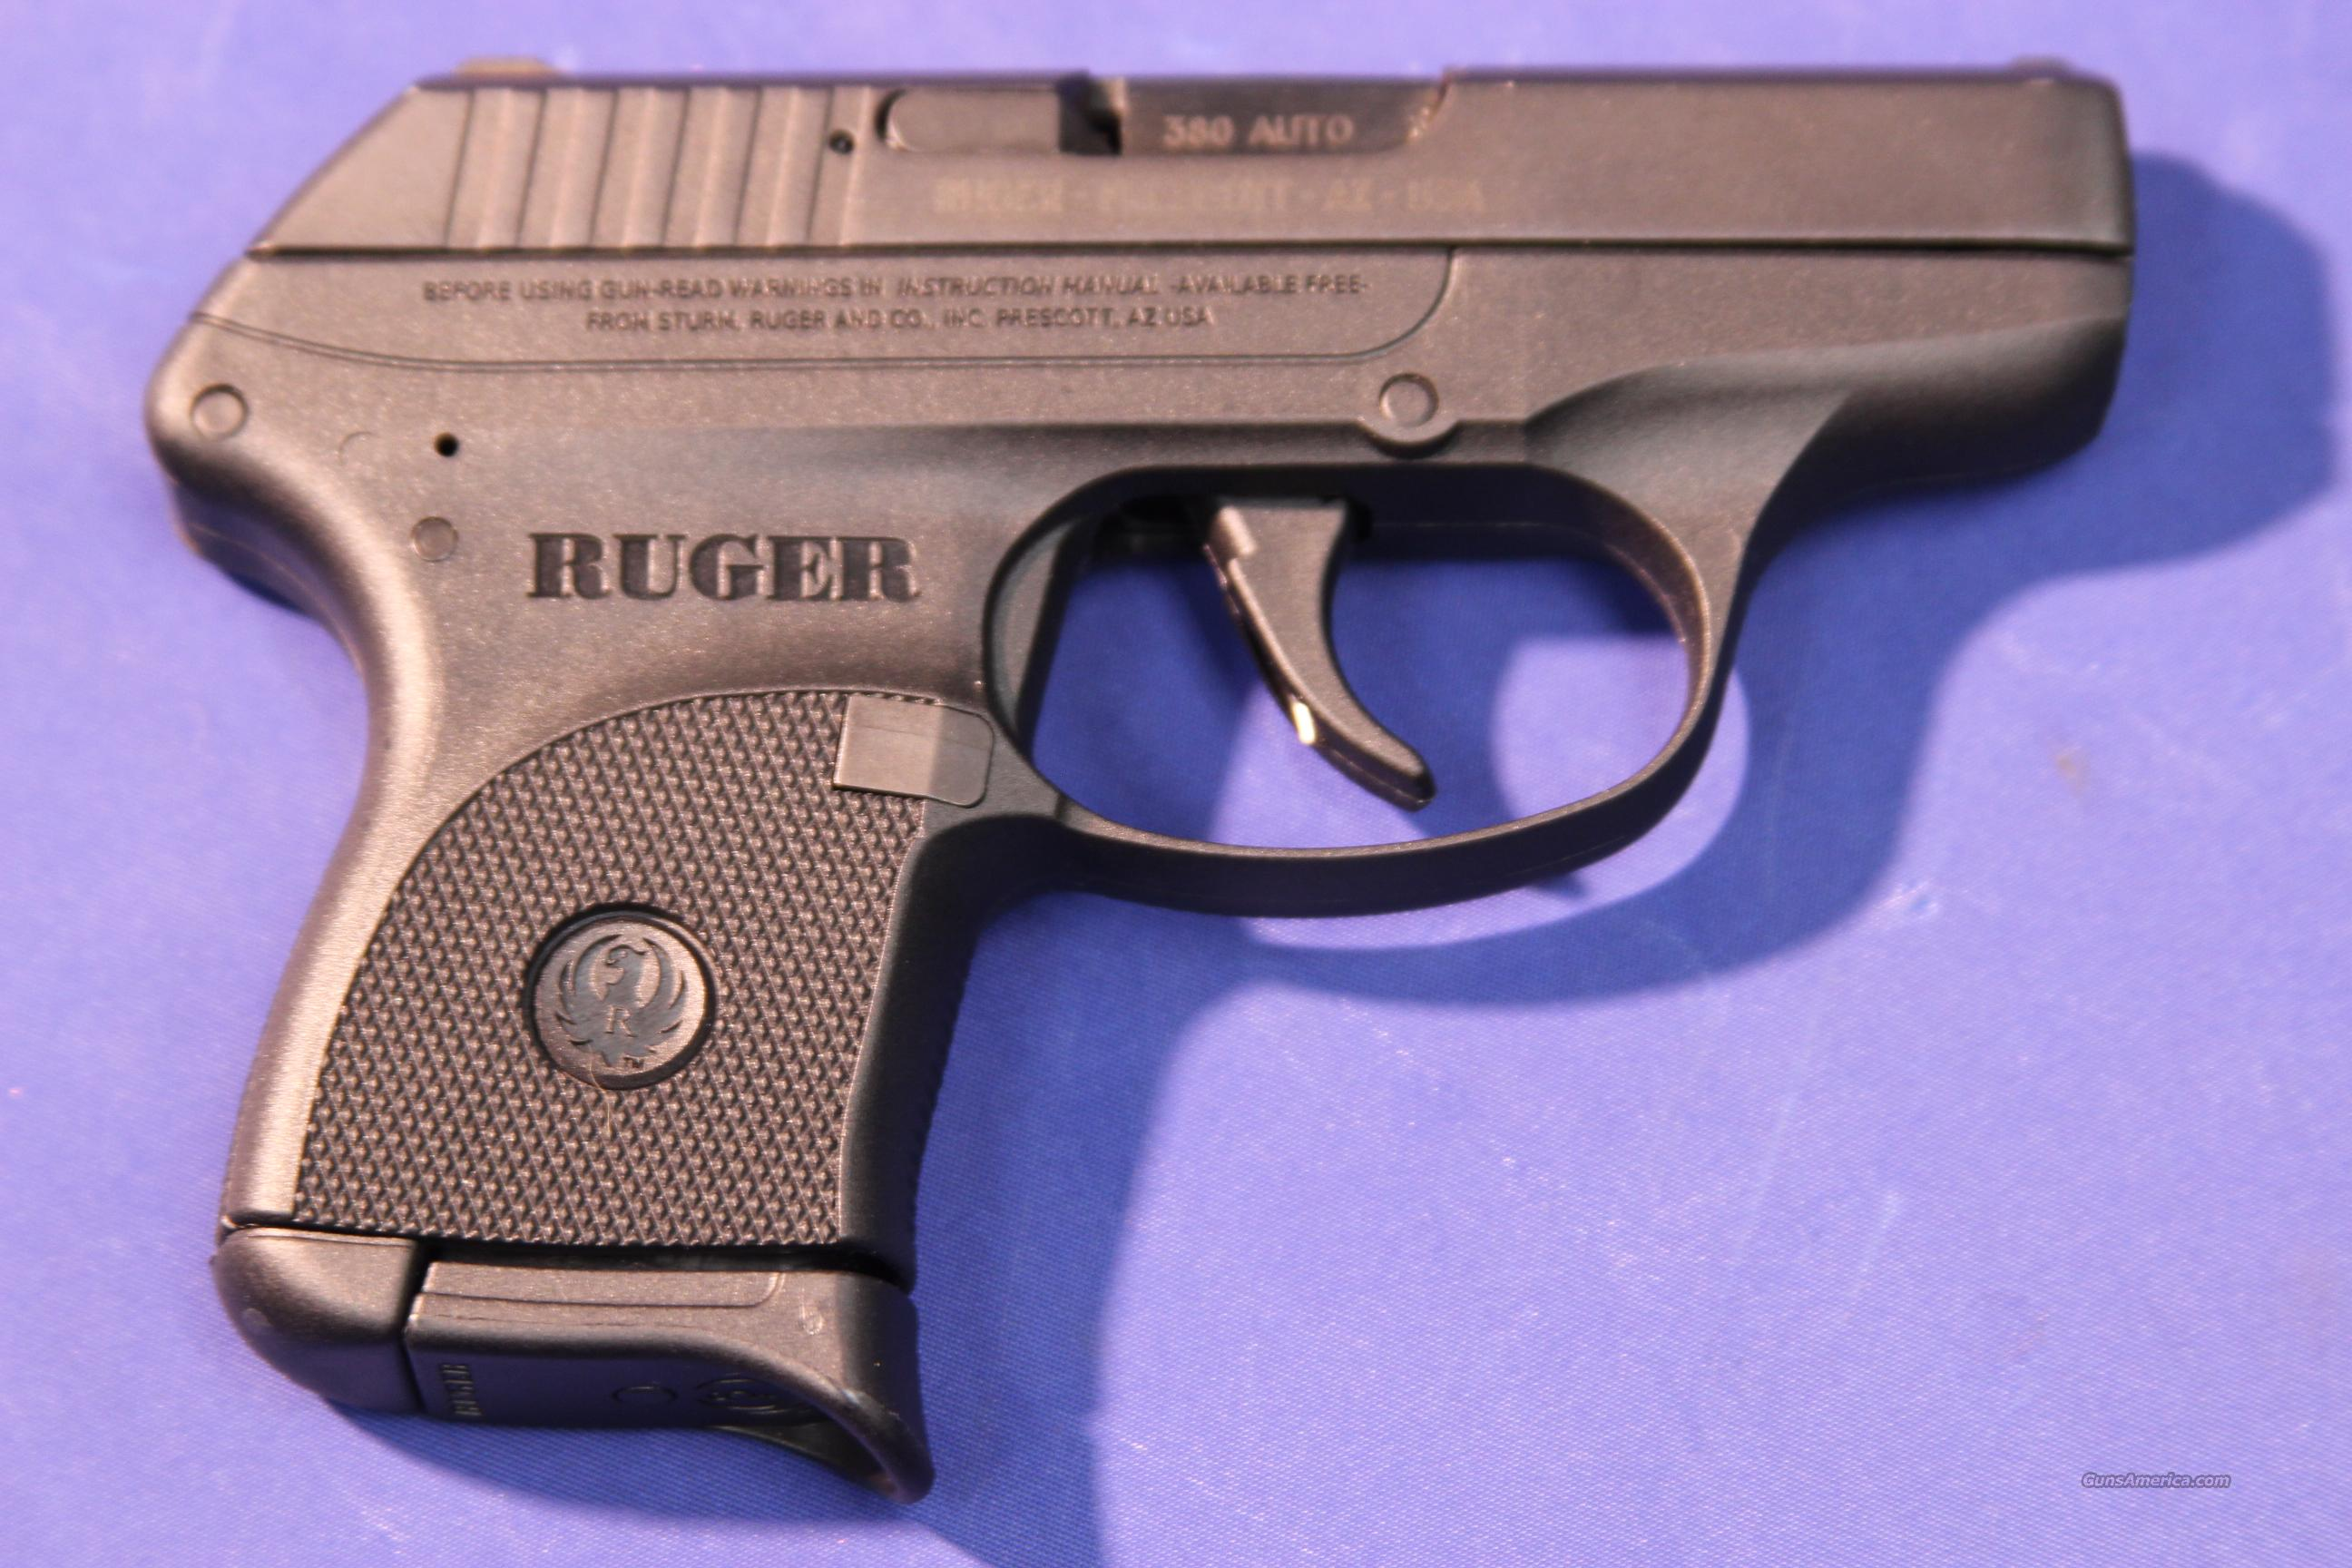 RUGER LCP .380 ACP – NEW!   Guns > Pistols > Ruger Semi-Auto Pistols > LCP